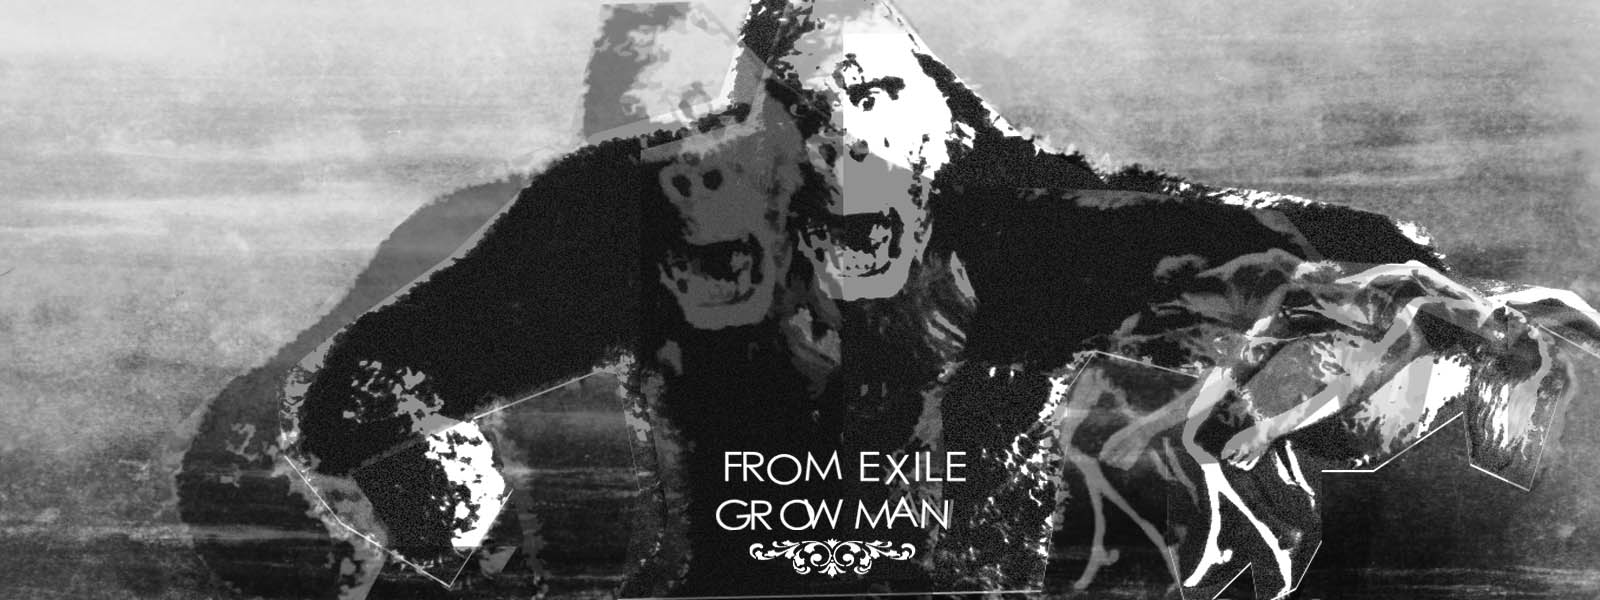 From exile, Grow man